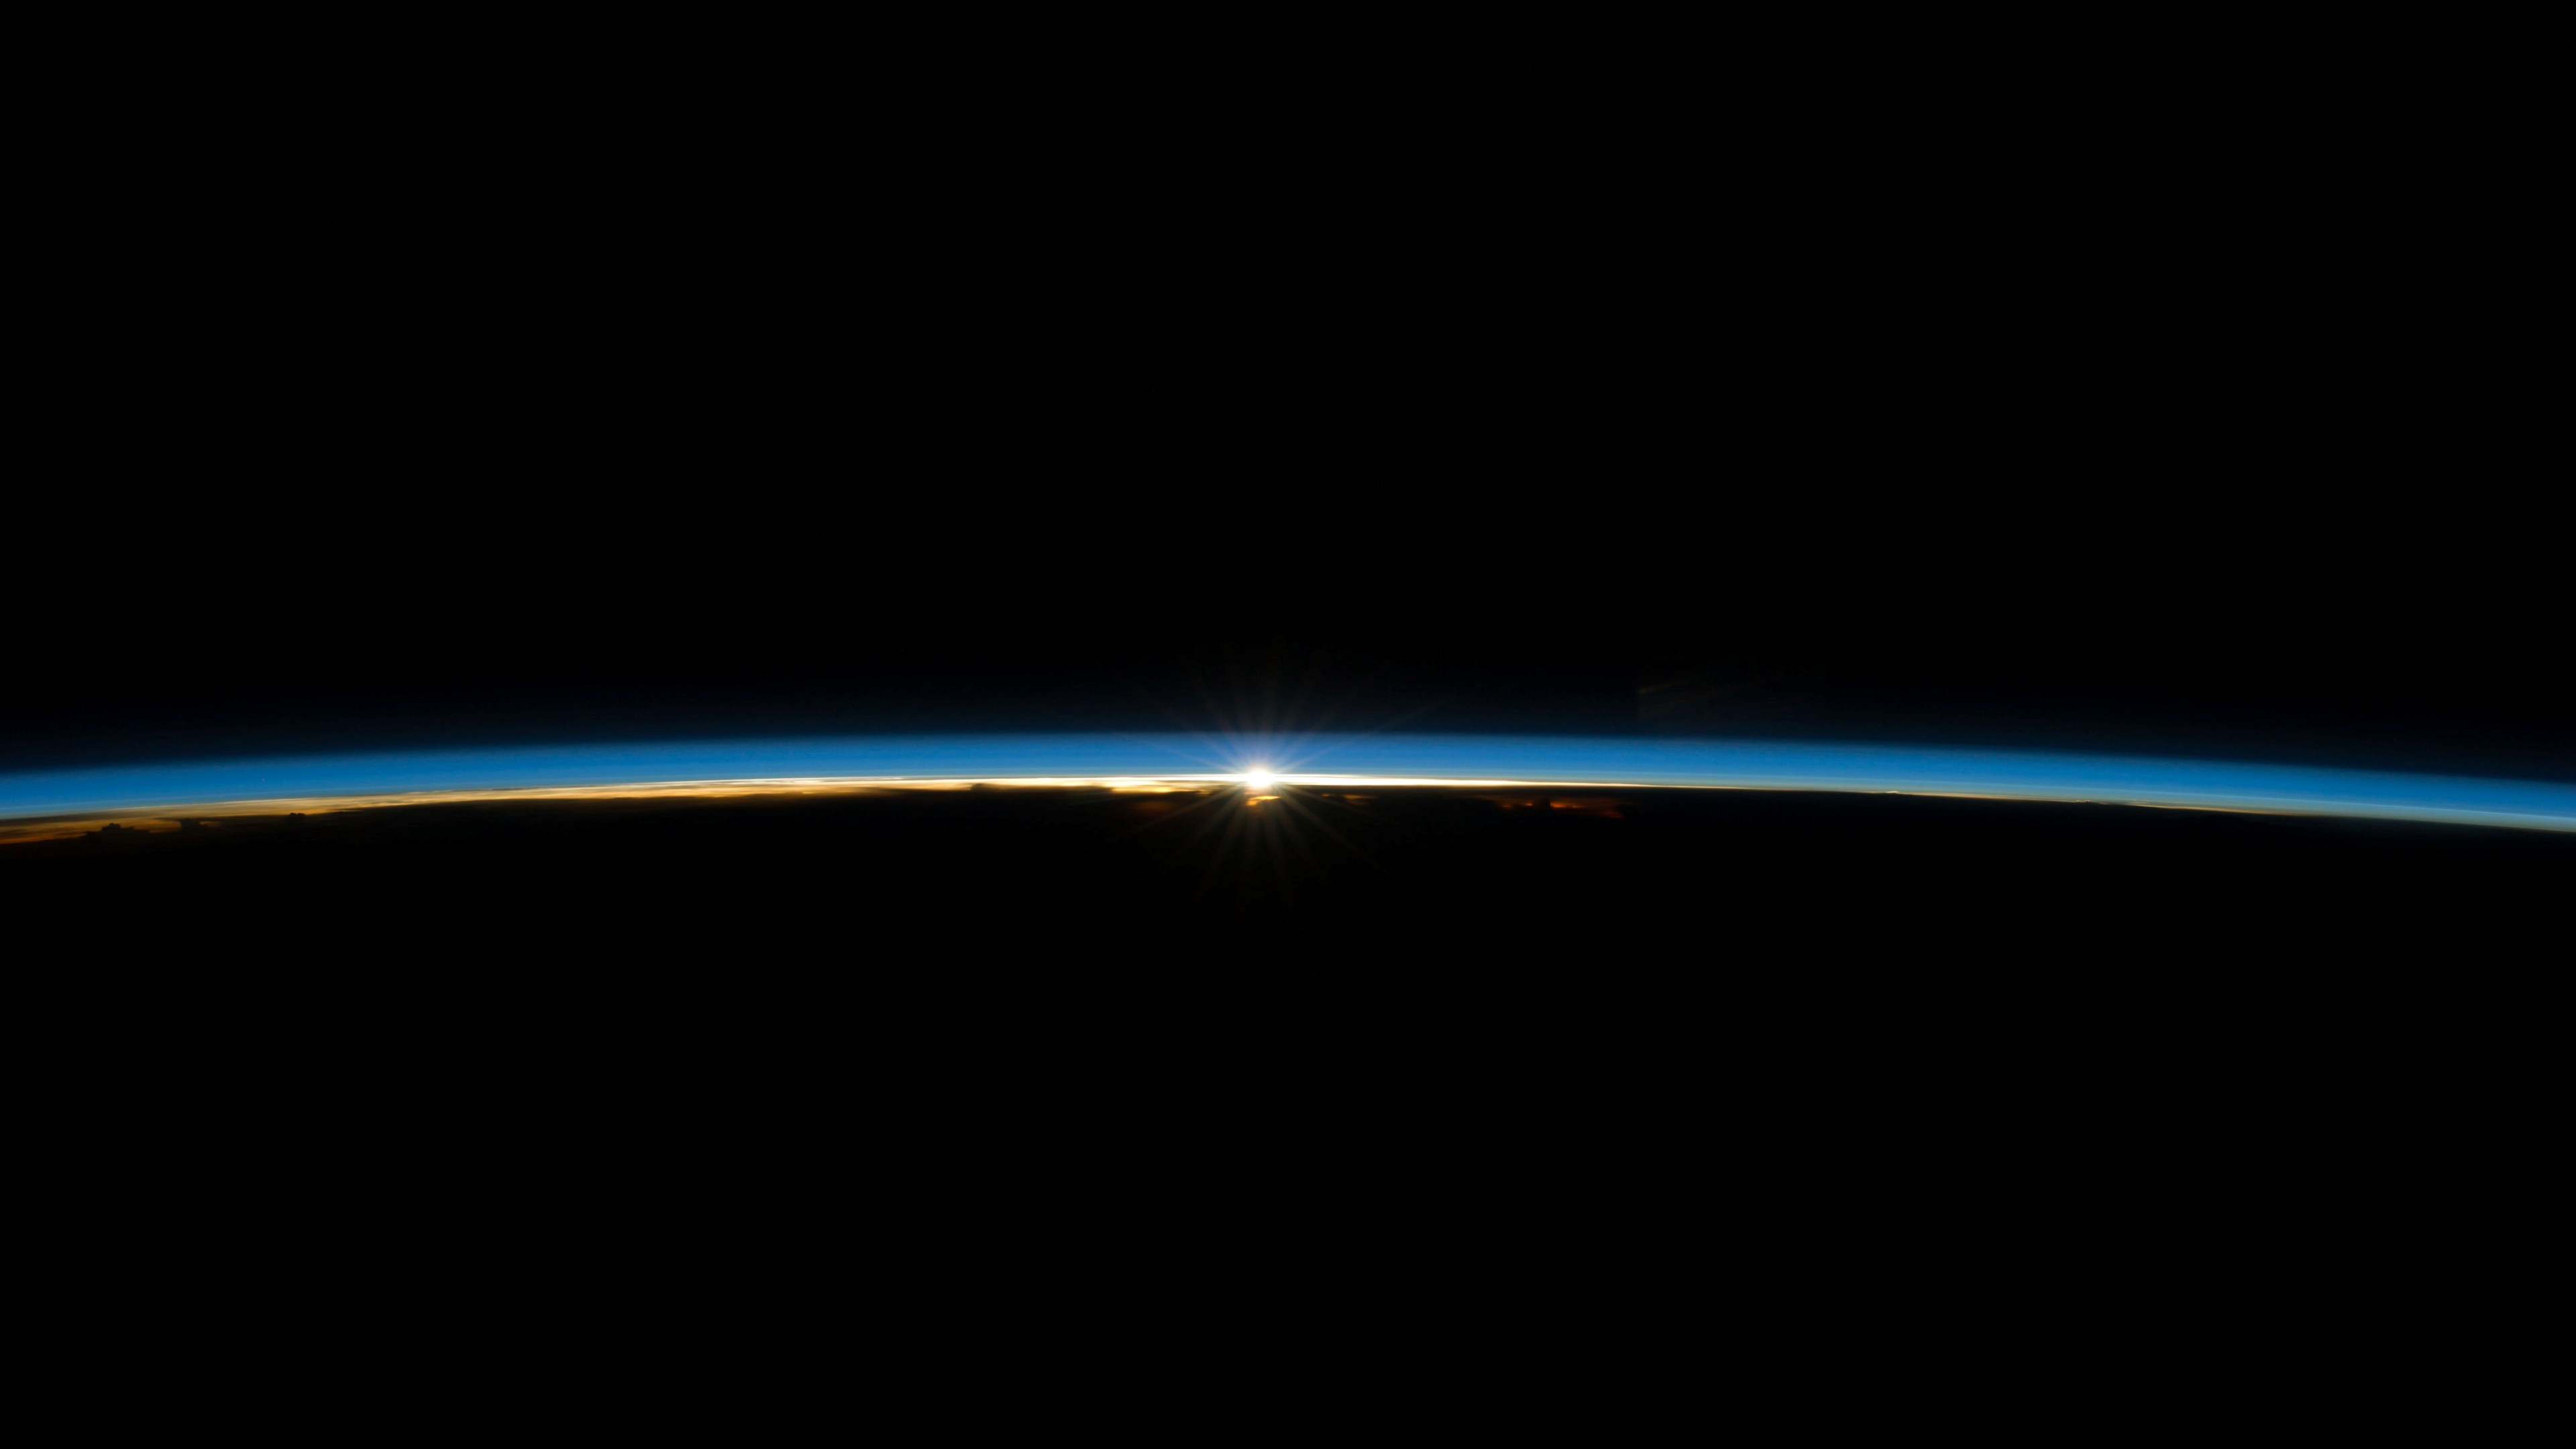 Earth's atmosphere 3840x2160.jpg